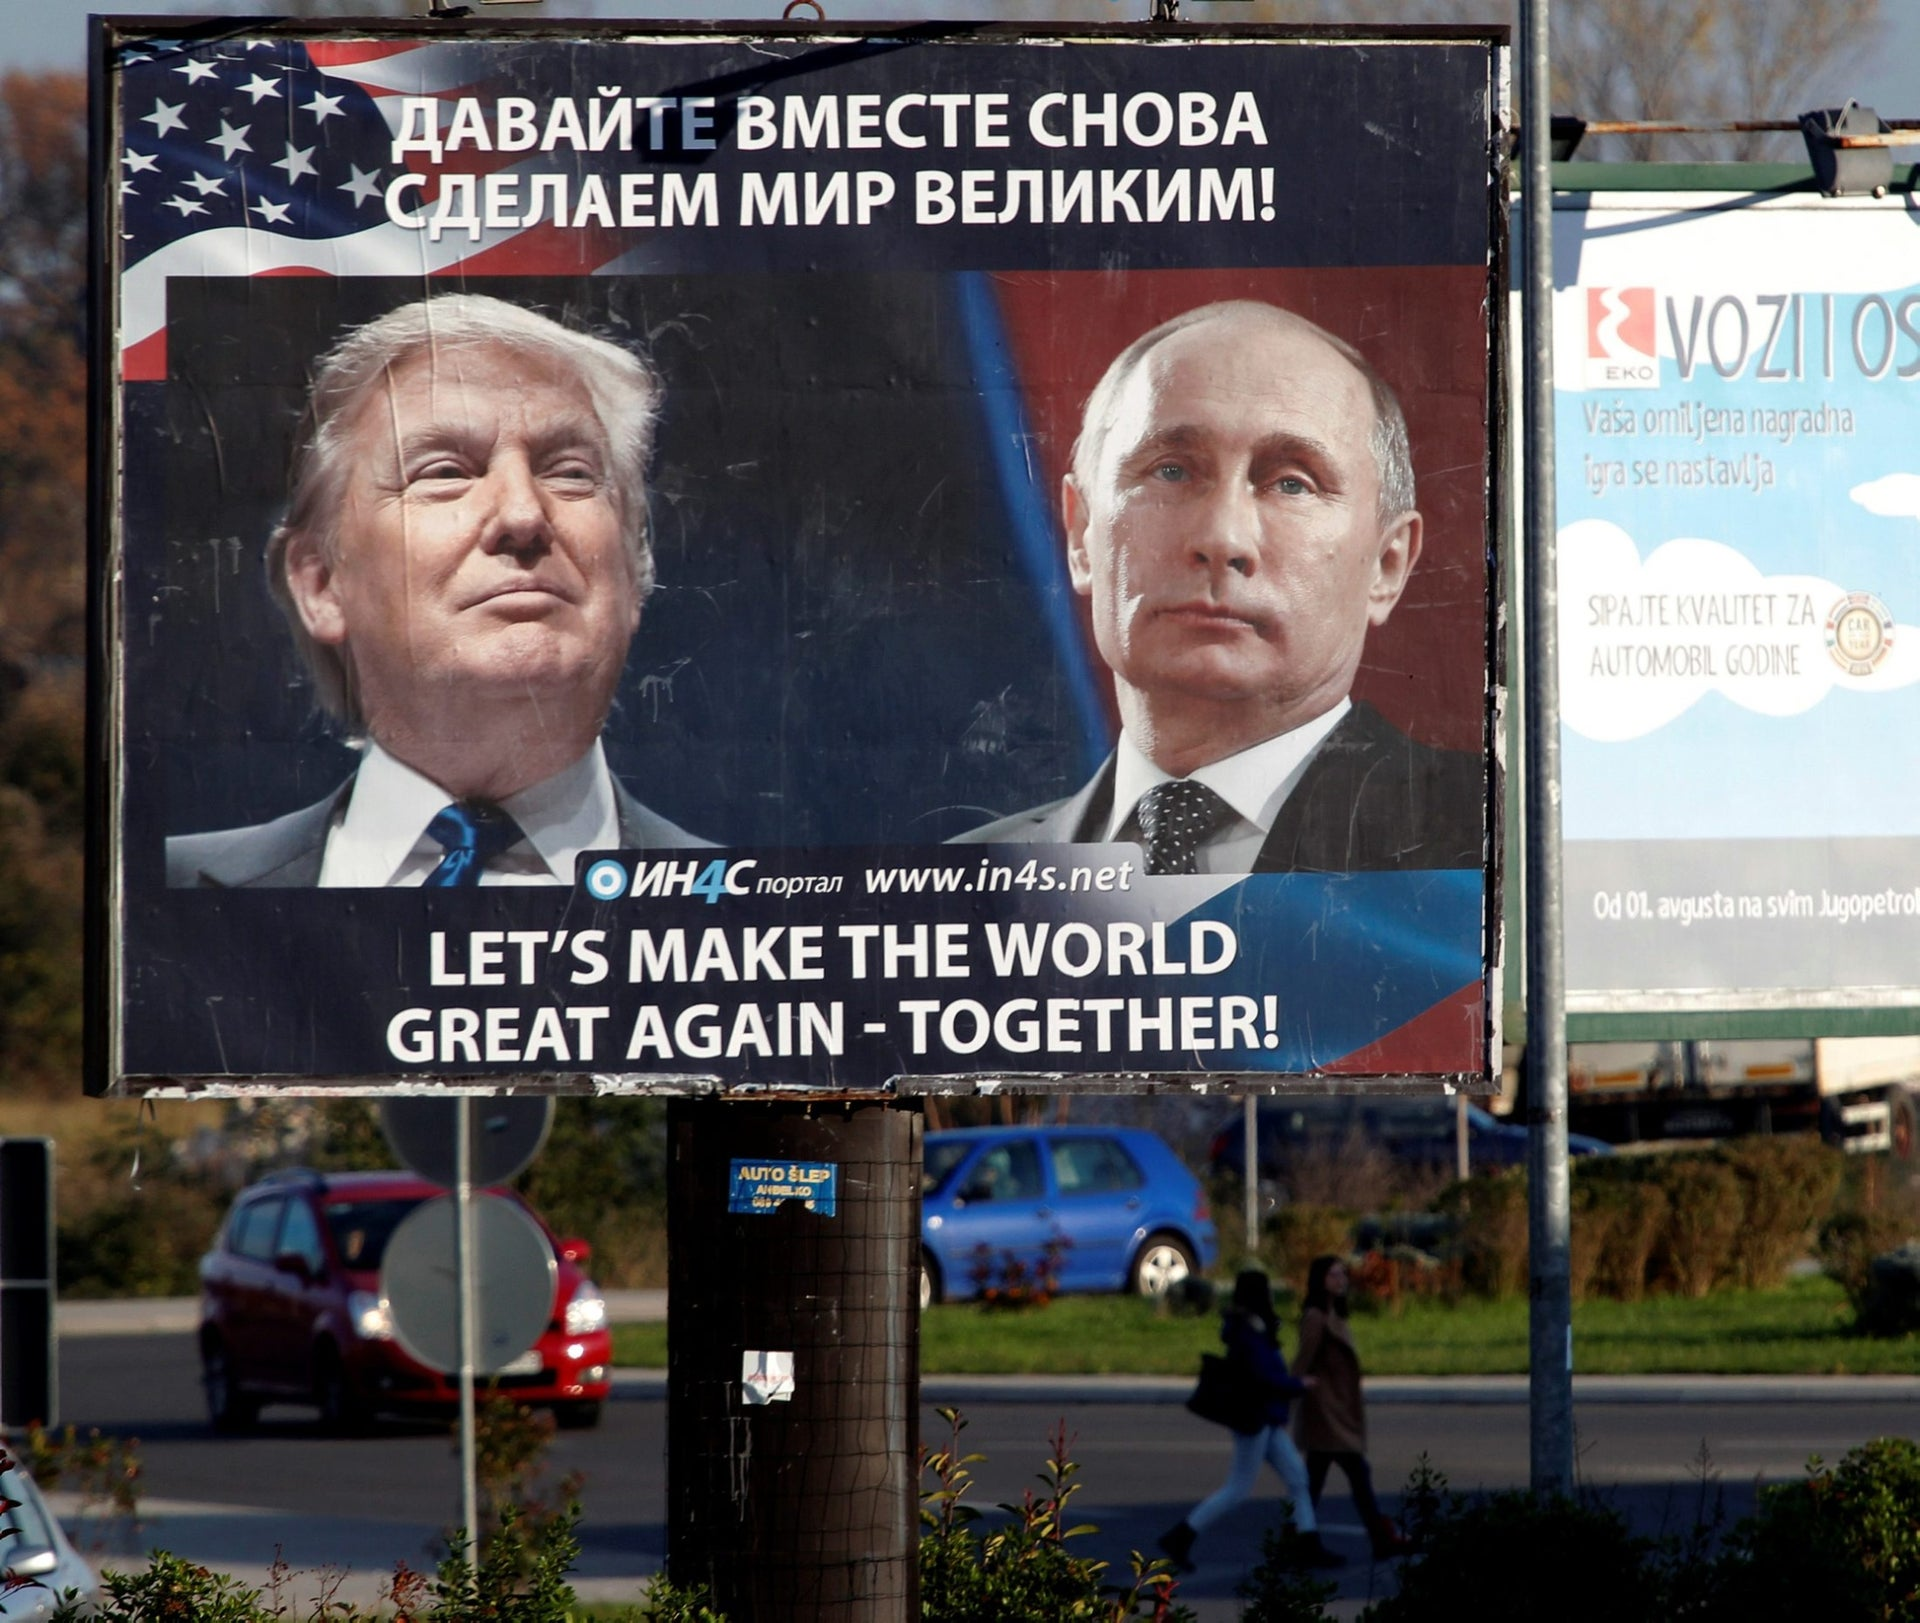 Pedestrians cross the street behind a billboard showing a pictures of U.S. President-elect Donald Trump and Russian President Vladimir Putin in Danilovgrad, Montenegro, November 16. 2016.